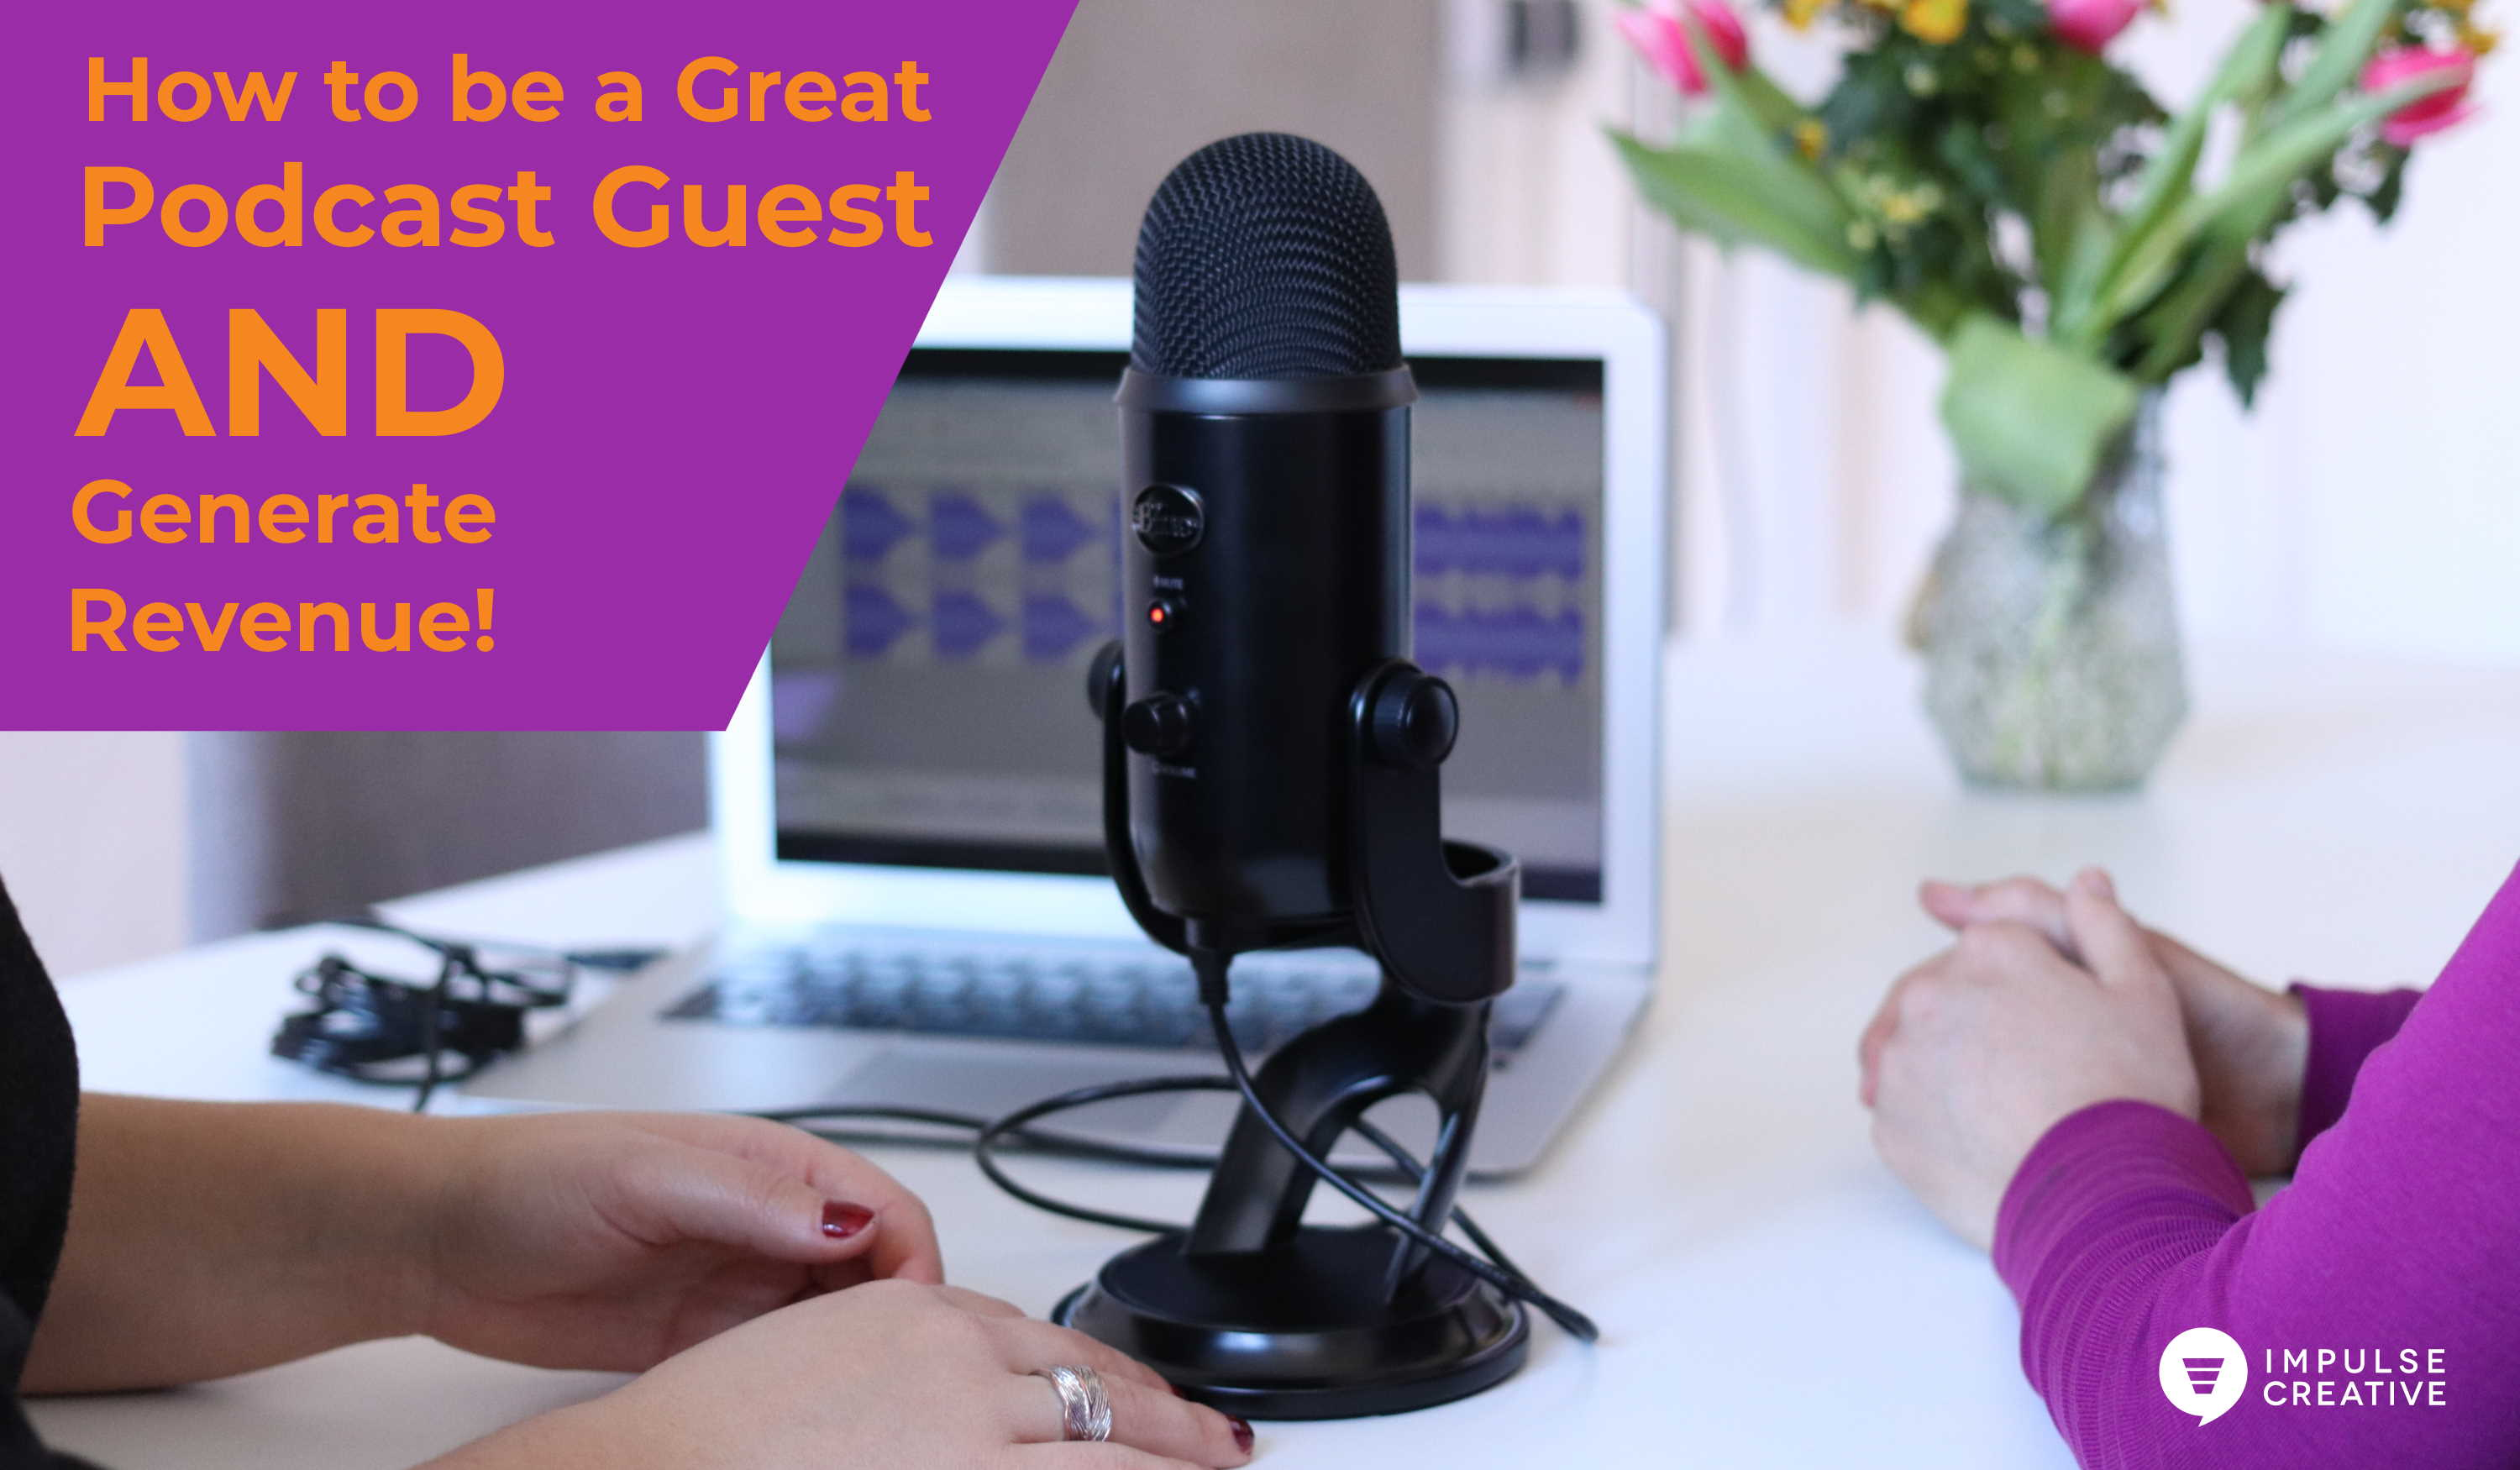 How to be a Great Podcast Guest and Generate Revenue